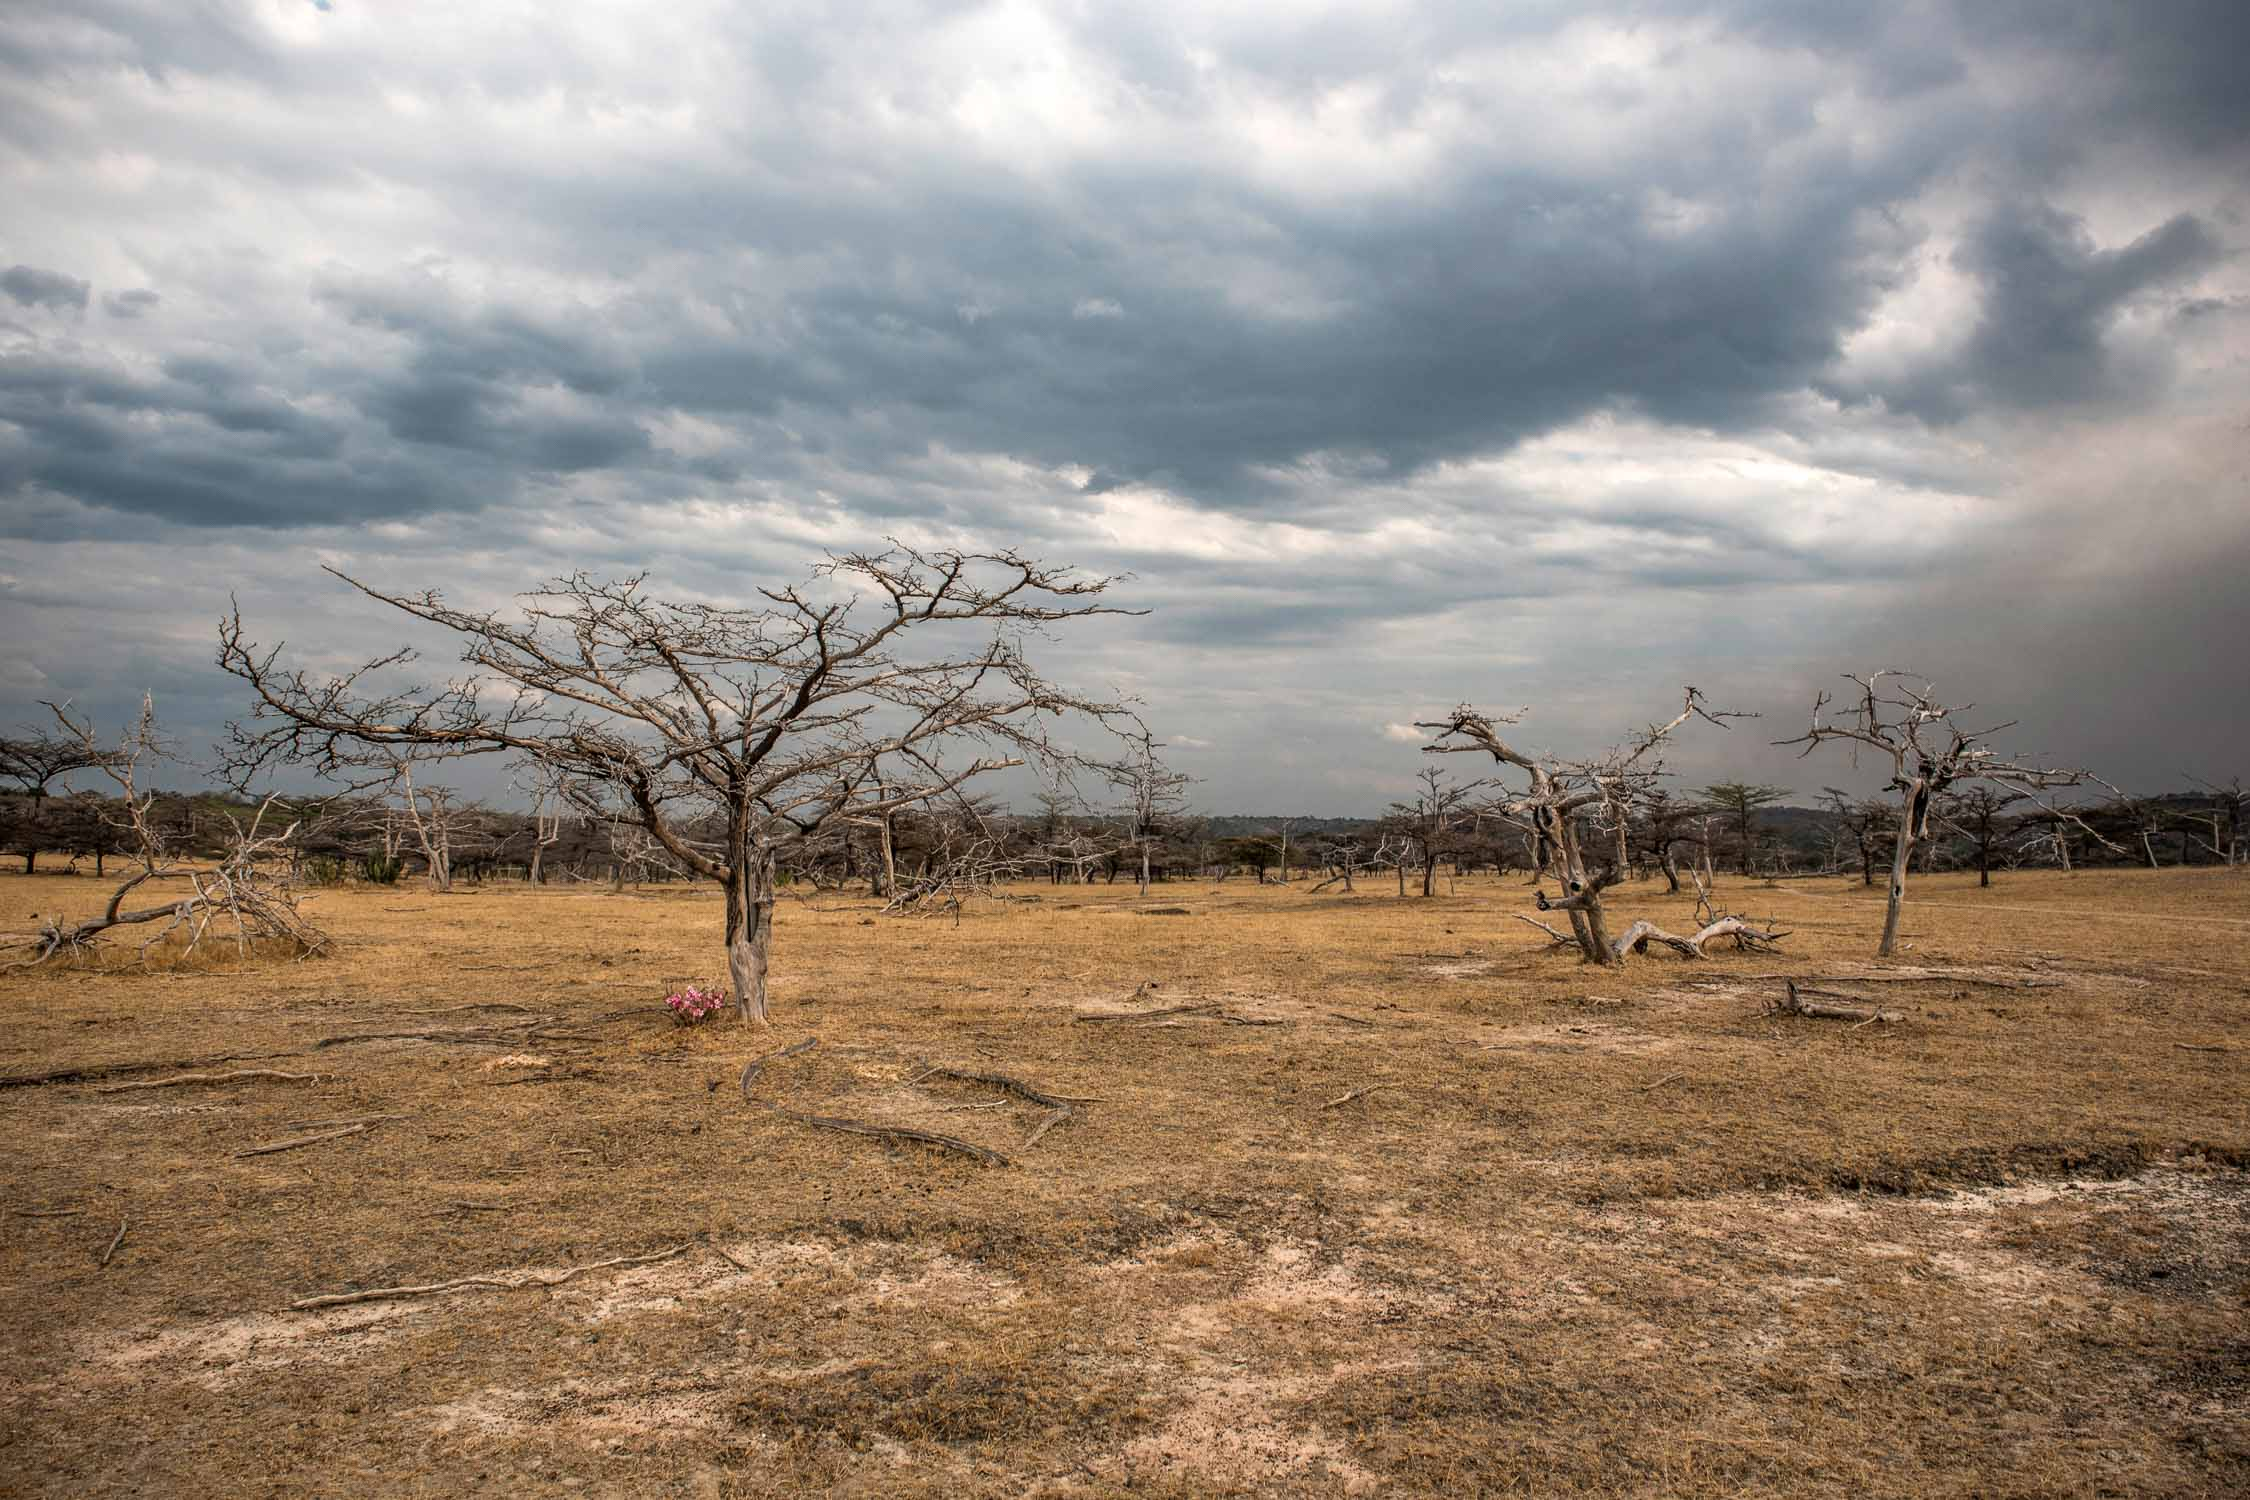 Acacia trees in the arid landscape in Selous Game Reserve during the dry season.